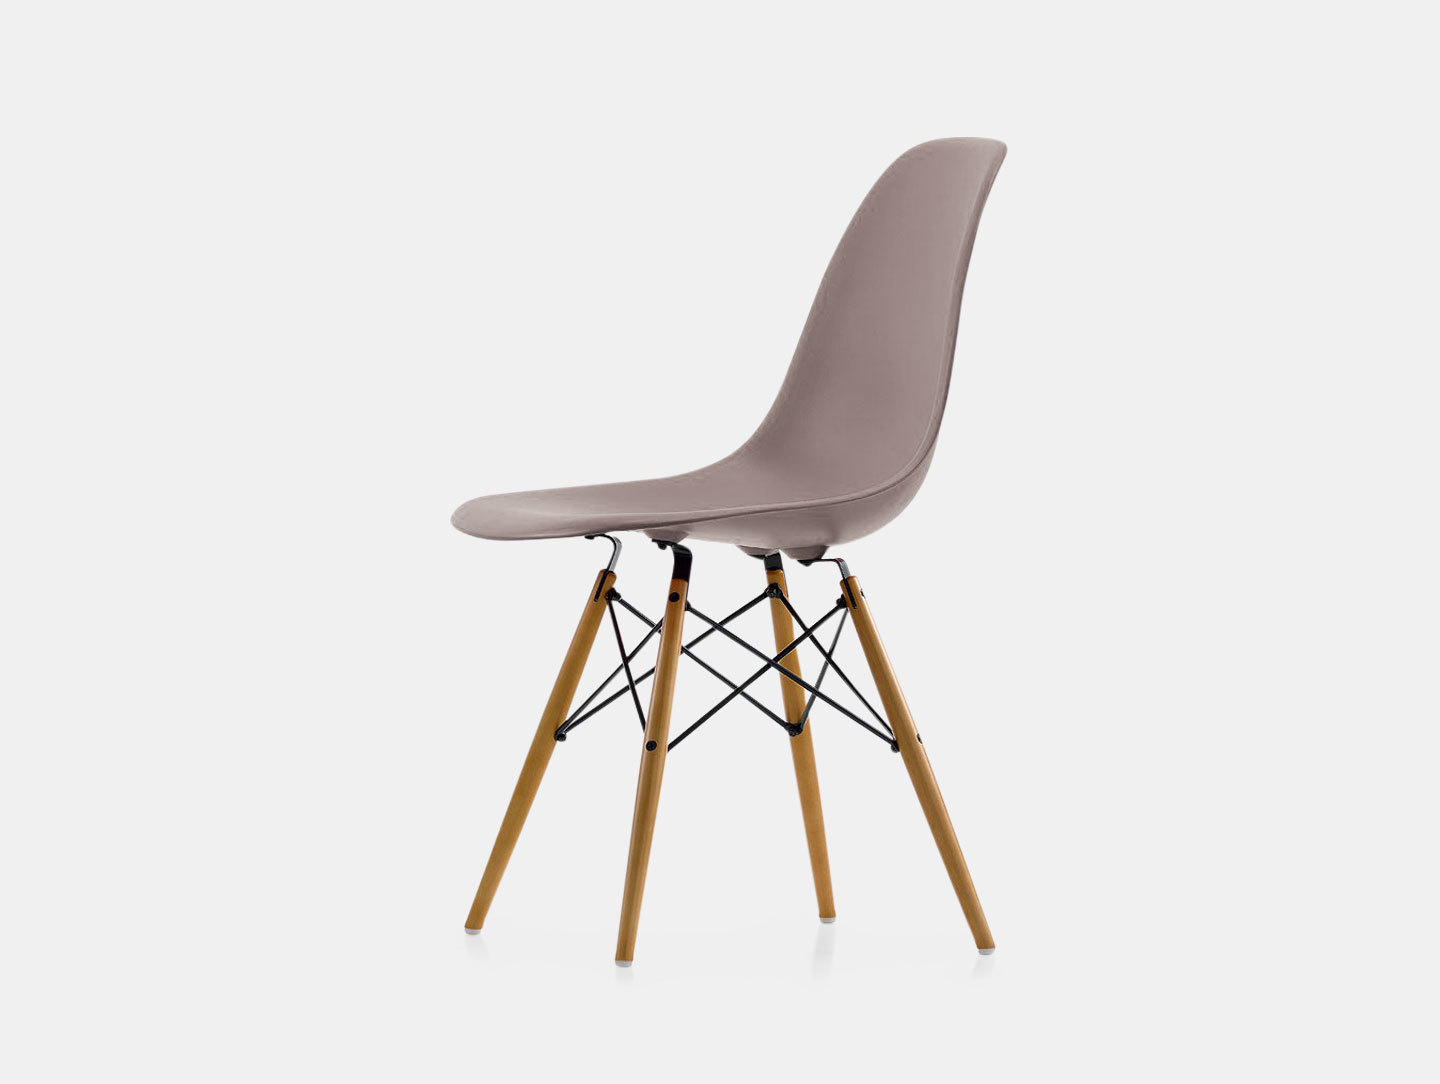 Eames DSW Plastic Side Chair image 2